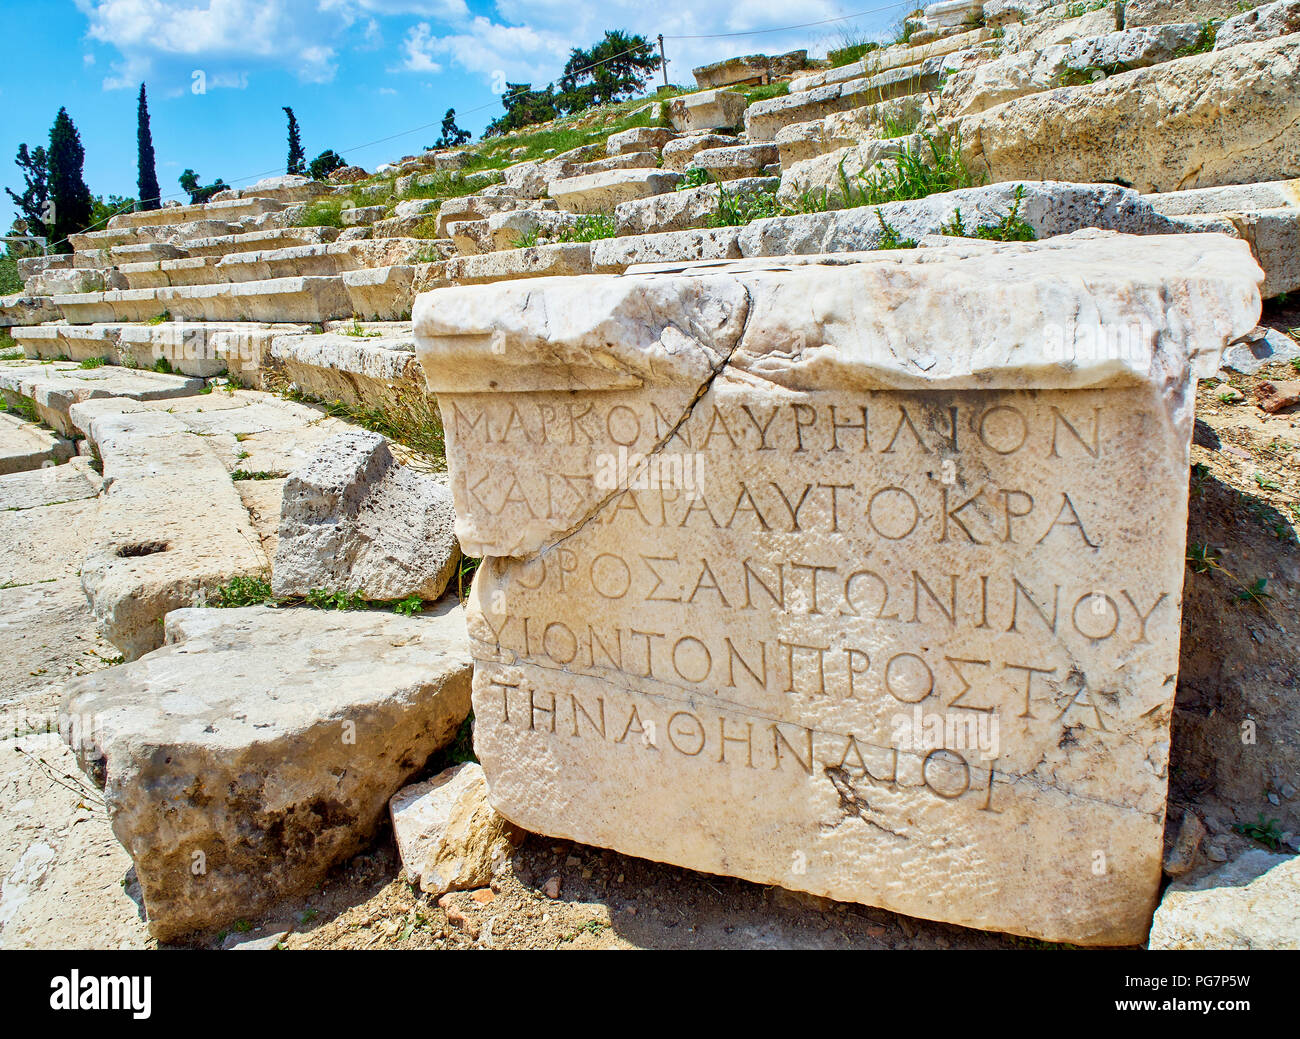 Remains of carved pedestal stone of the Theatre of Dionysus Eleuthereus. Acropolis of Athens. Attica region, Greece. - Stock Image